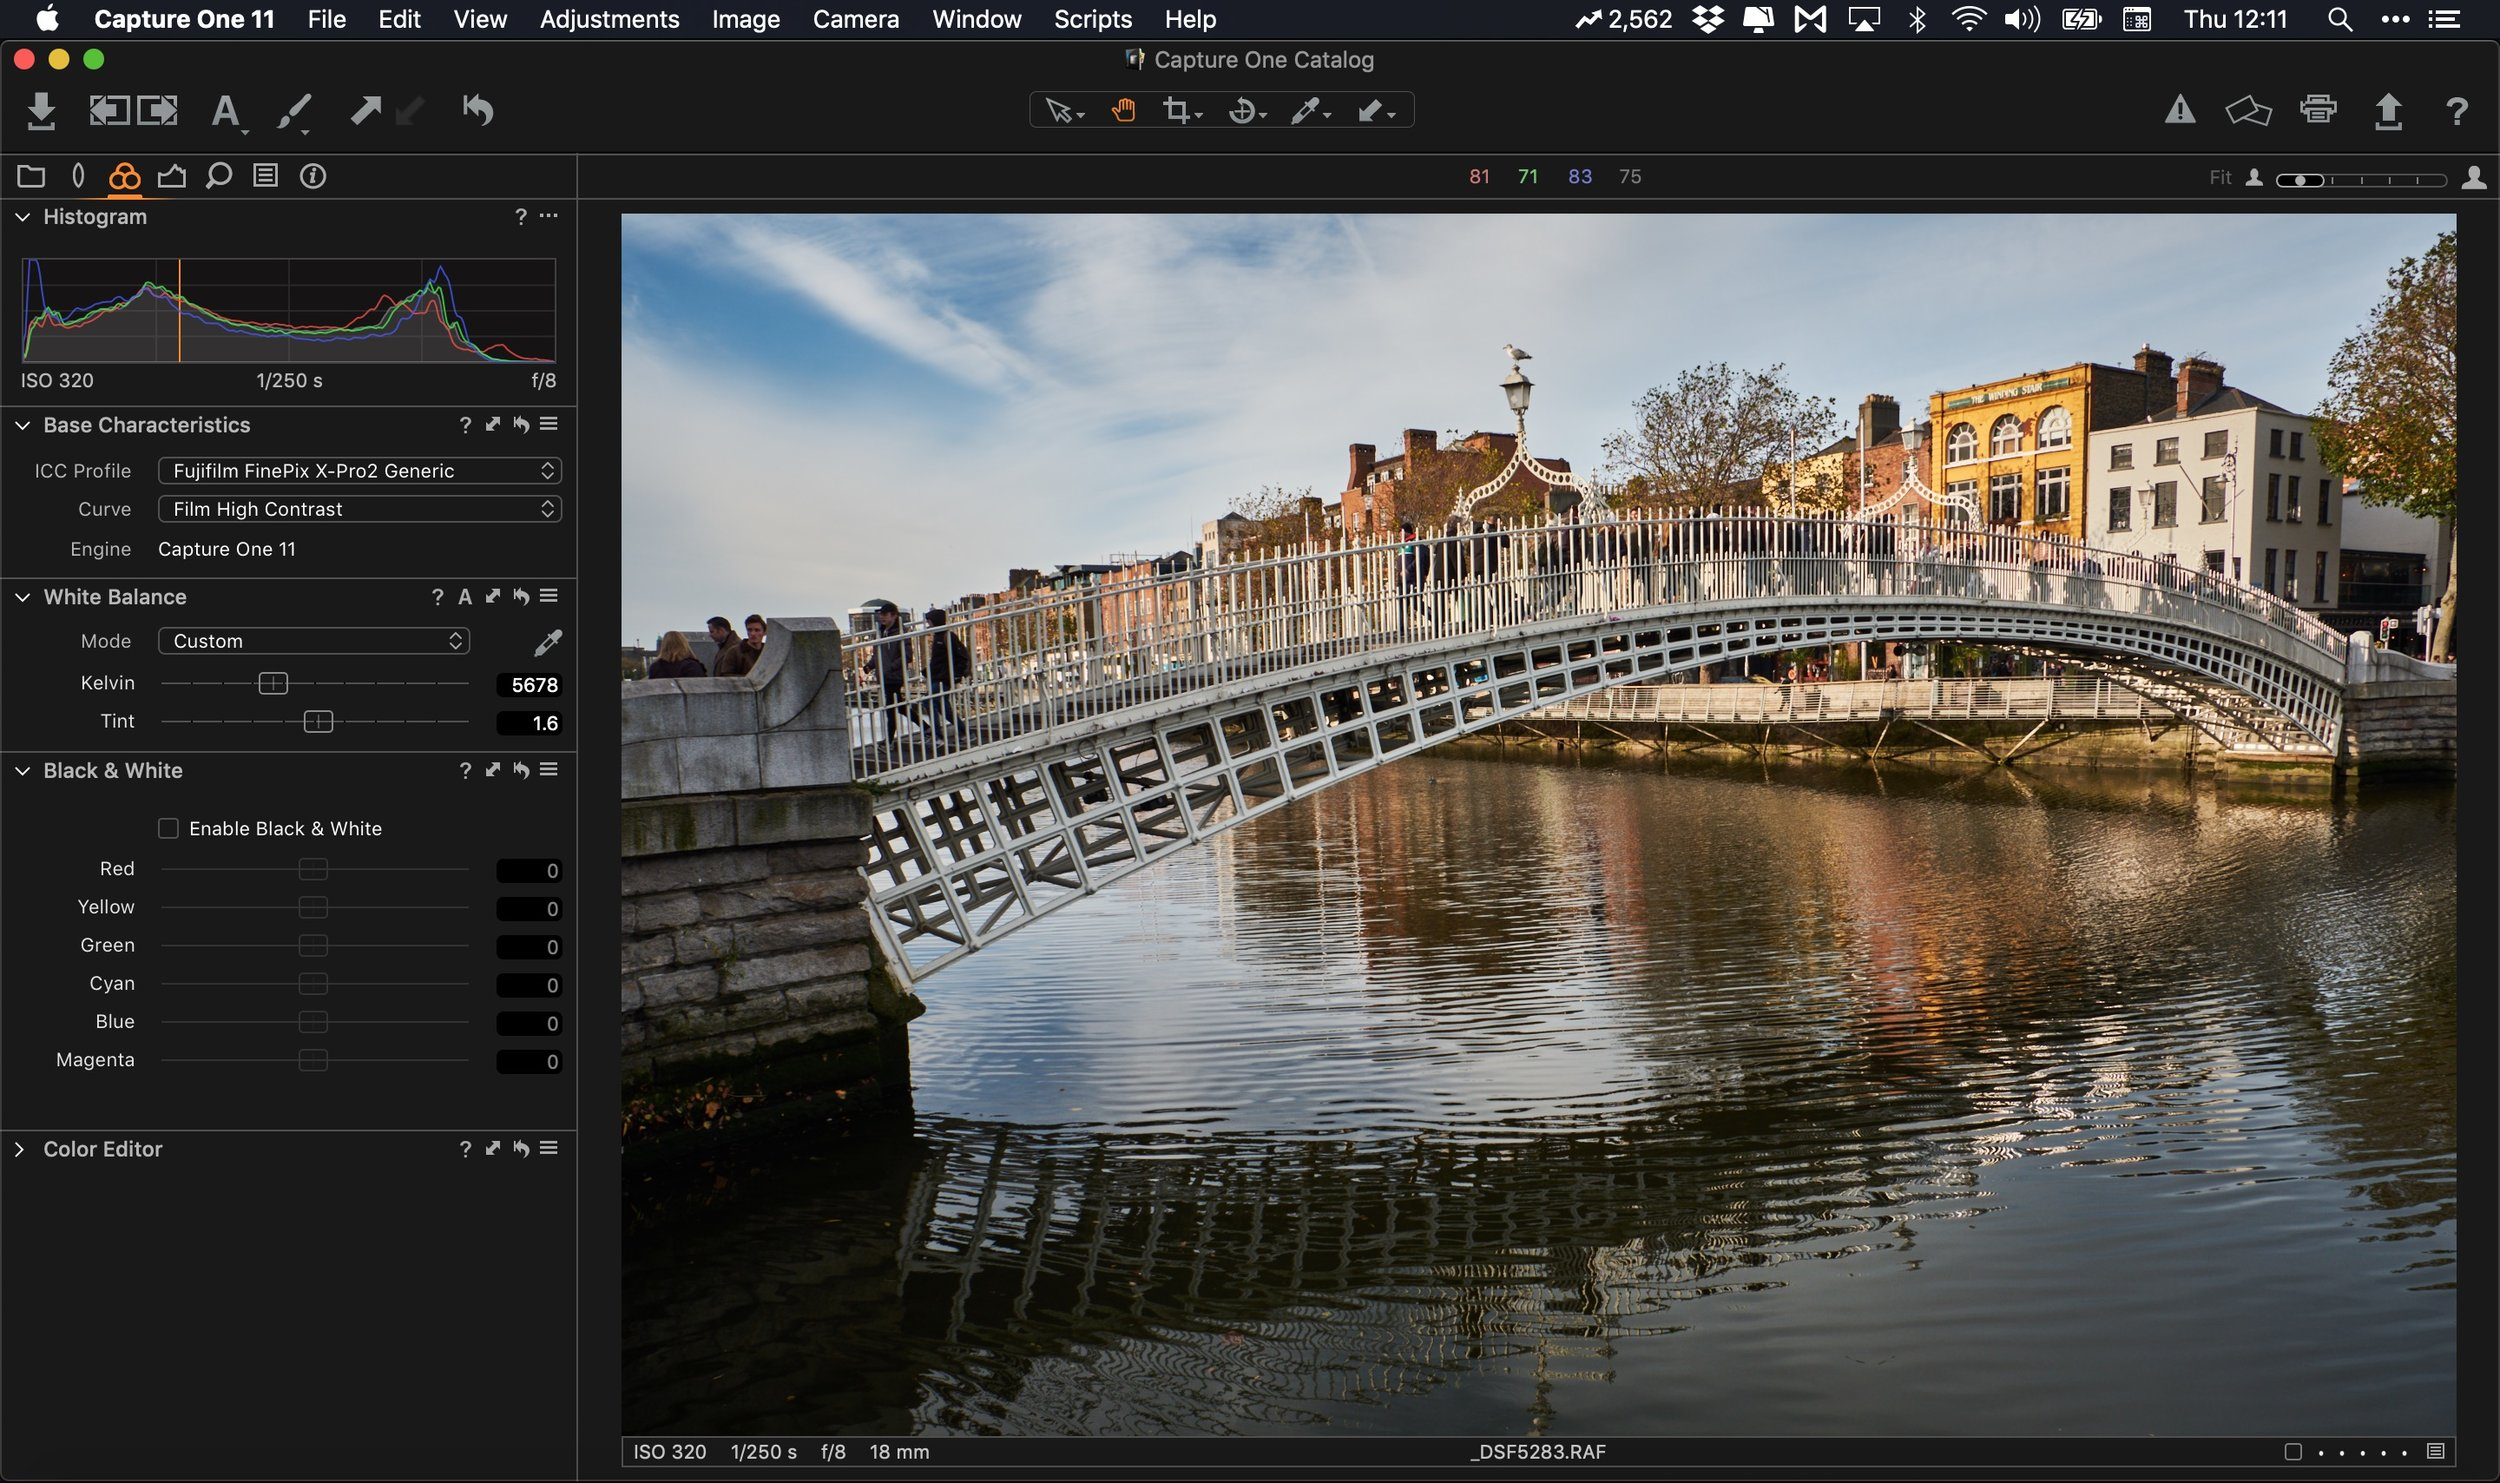 Capture One Express Fujifilm A Quick Overview Thomas Fitzgerald Photography